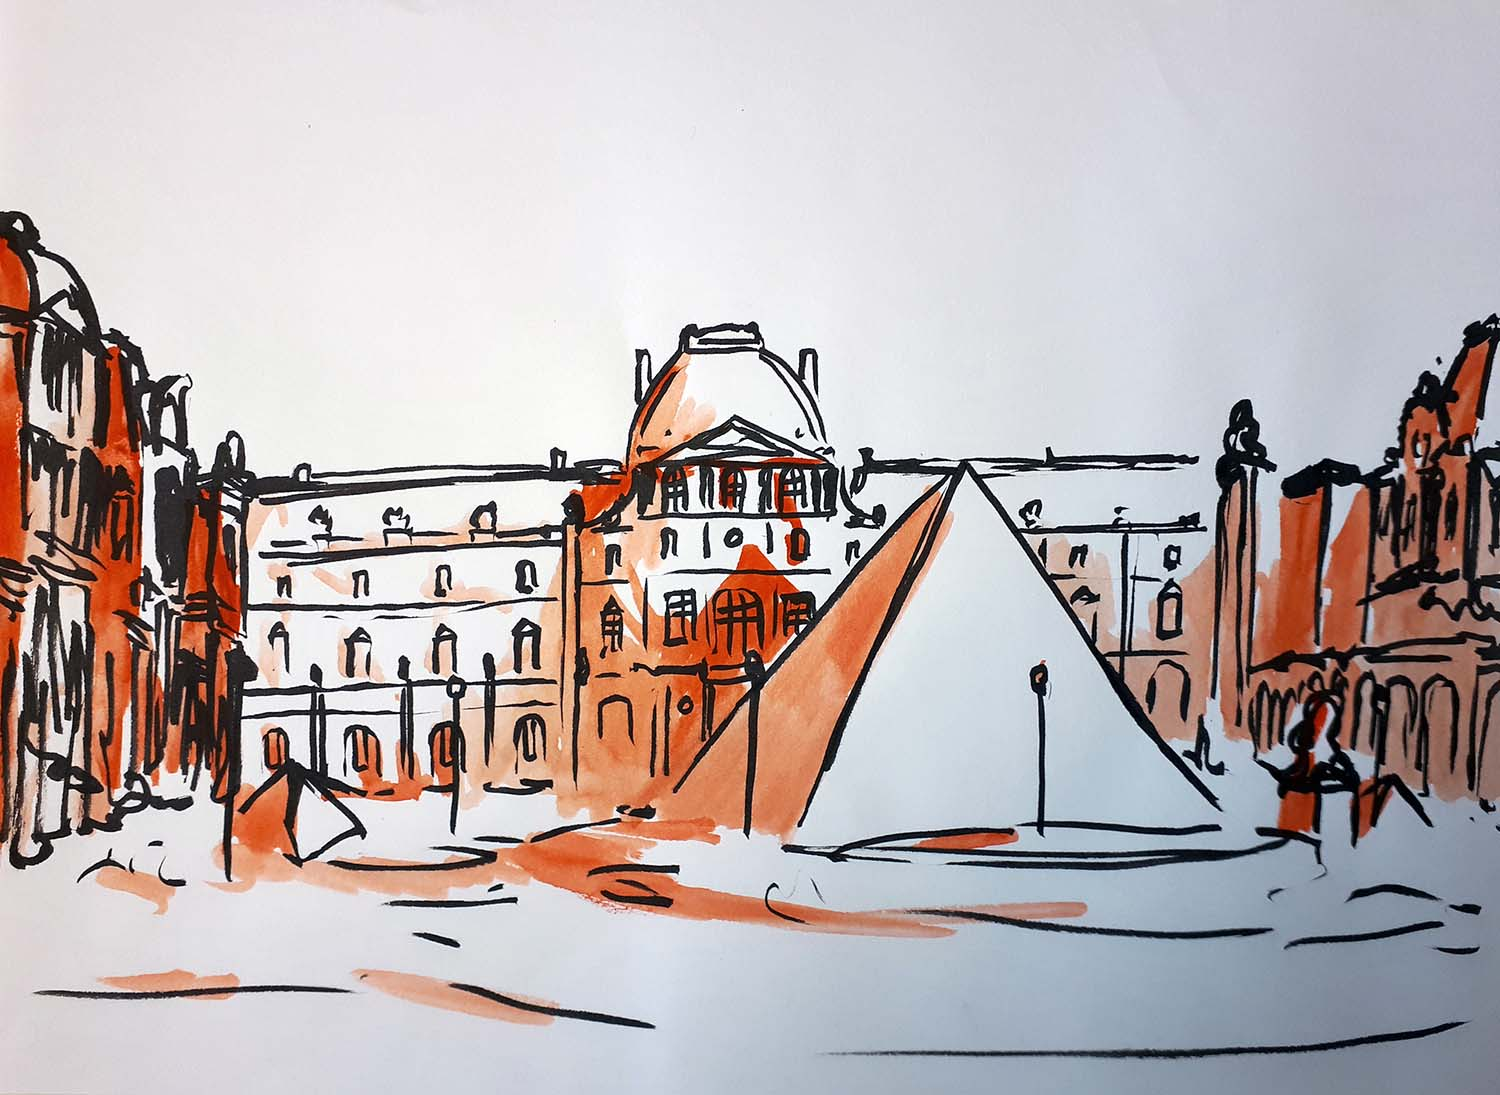 Dessin, urban sketch, dessin de rue, Louvre, Paris, orange, Antoine Dazy